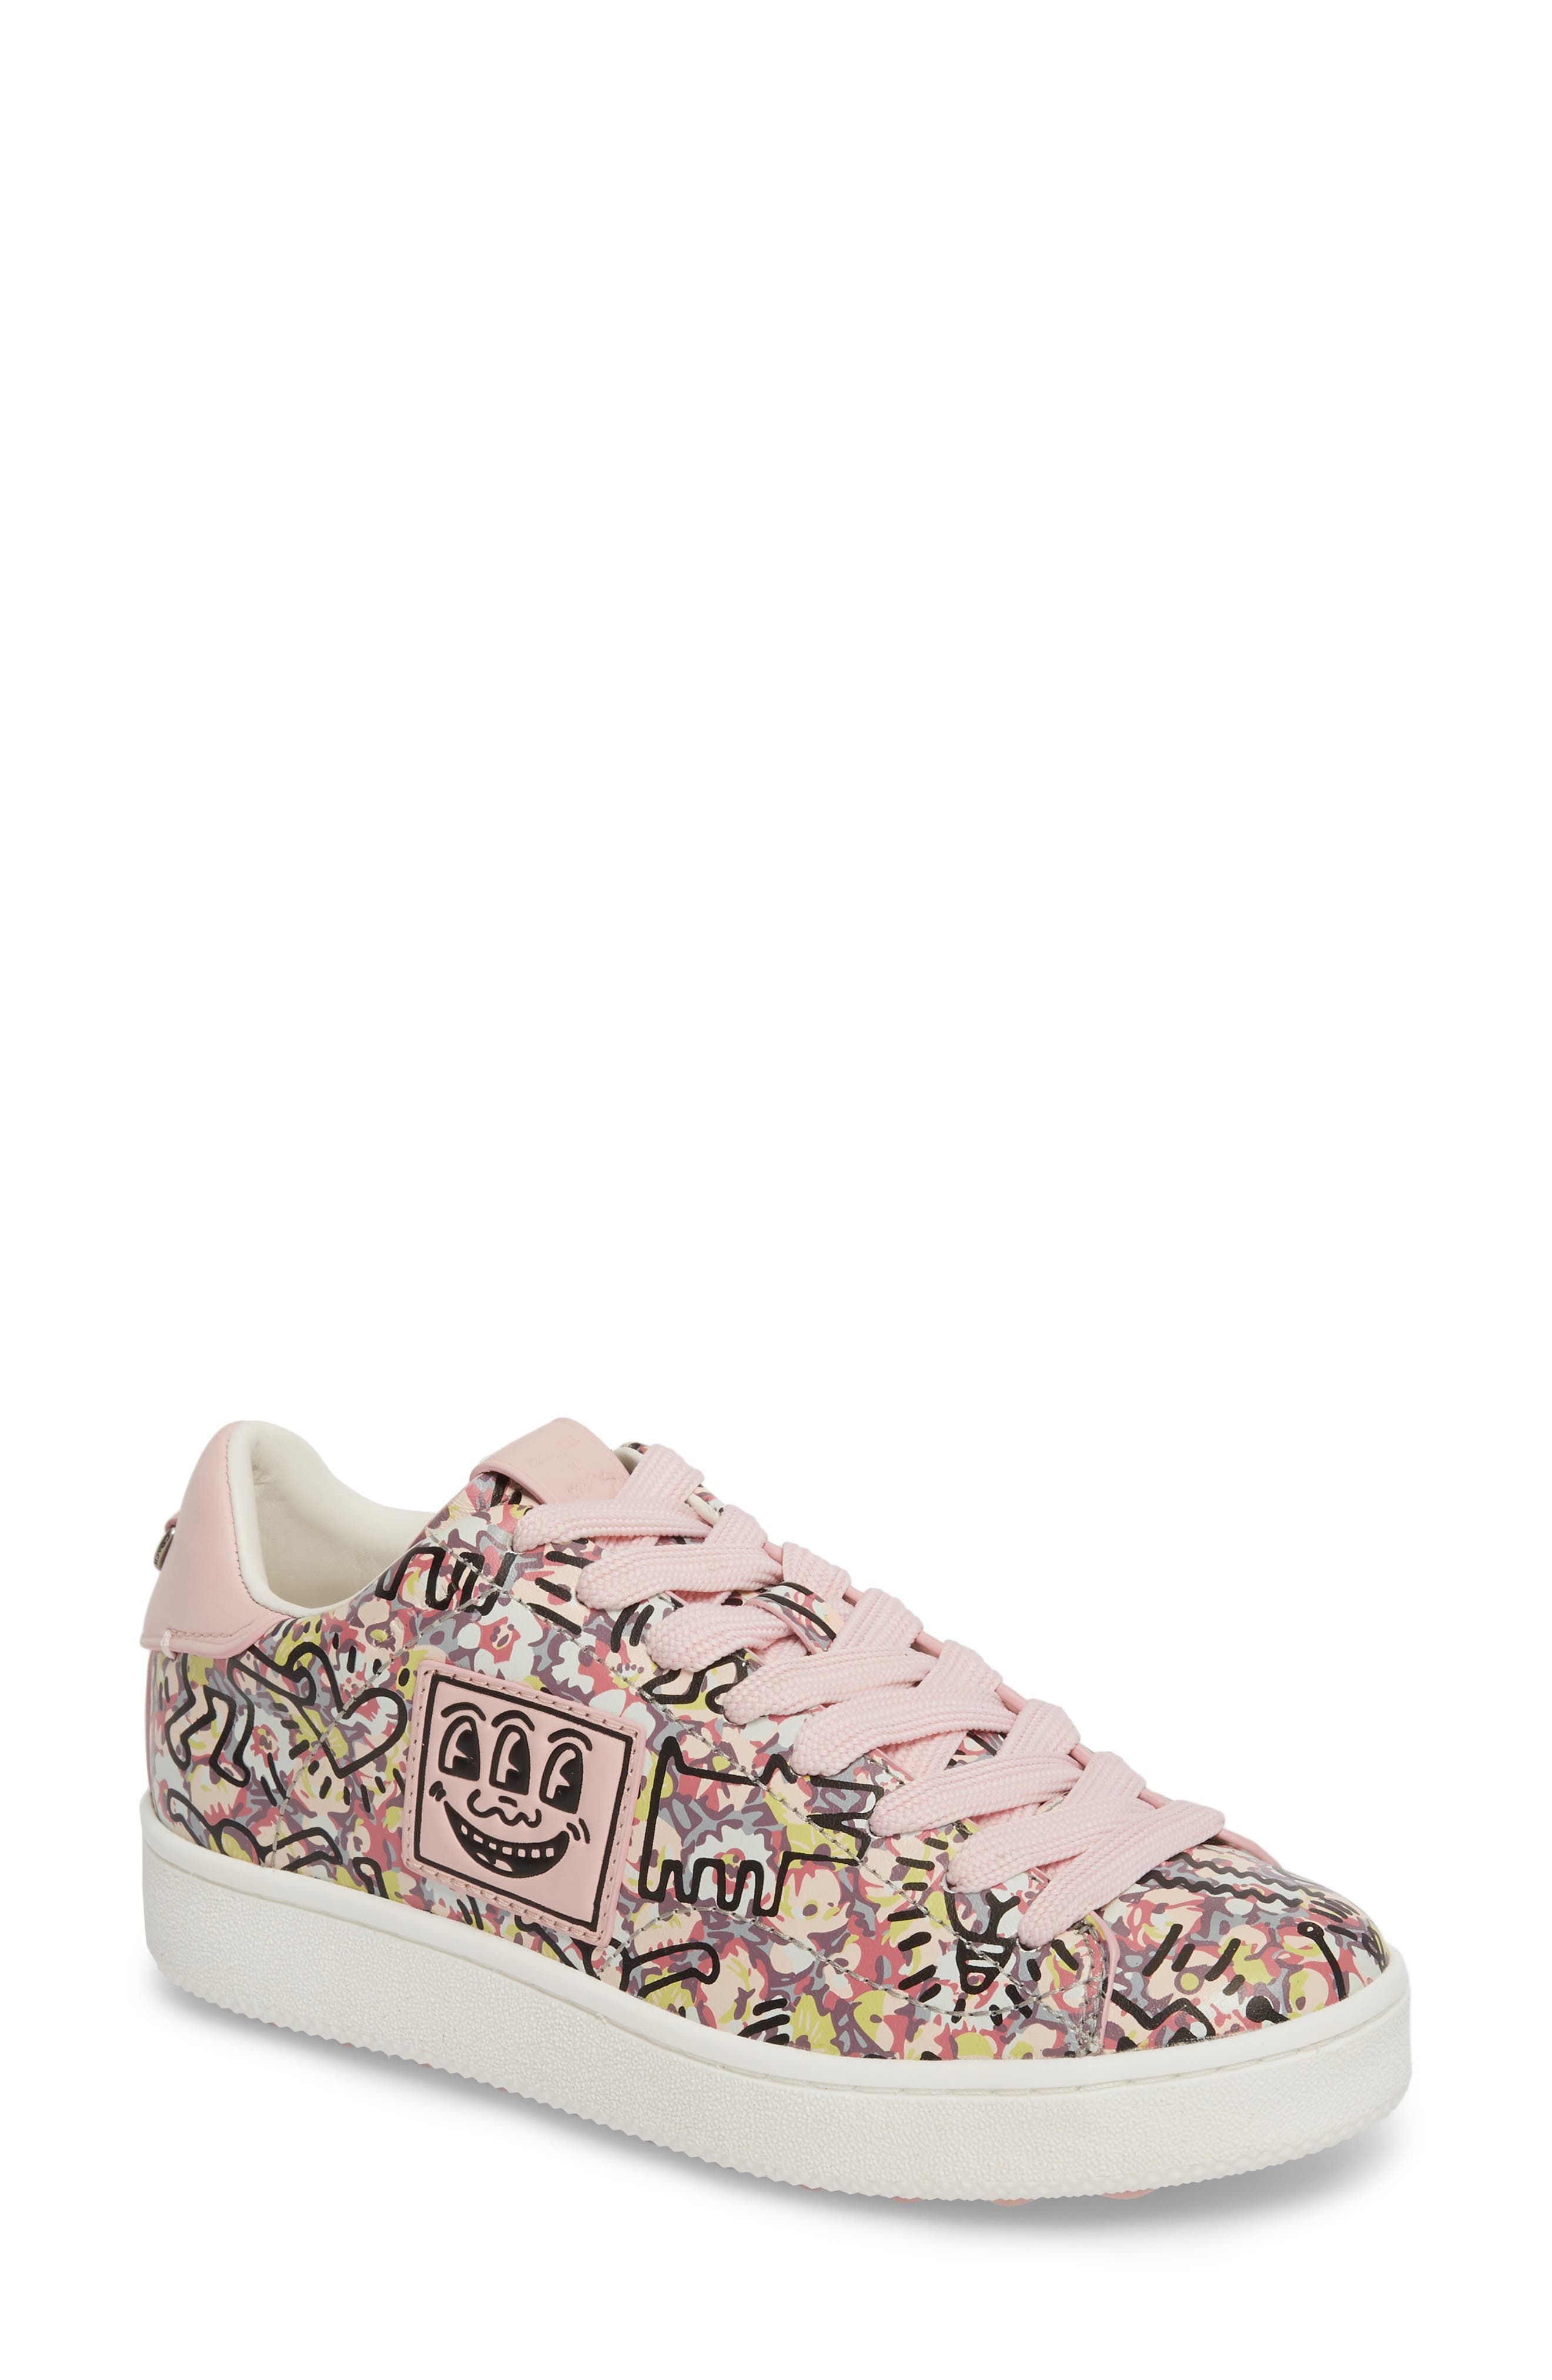 x Keith Haring Low Top Sneaker,                             Main thumbnail 1, color,                             674